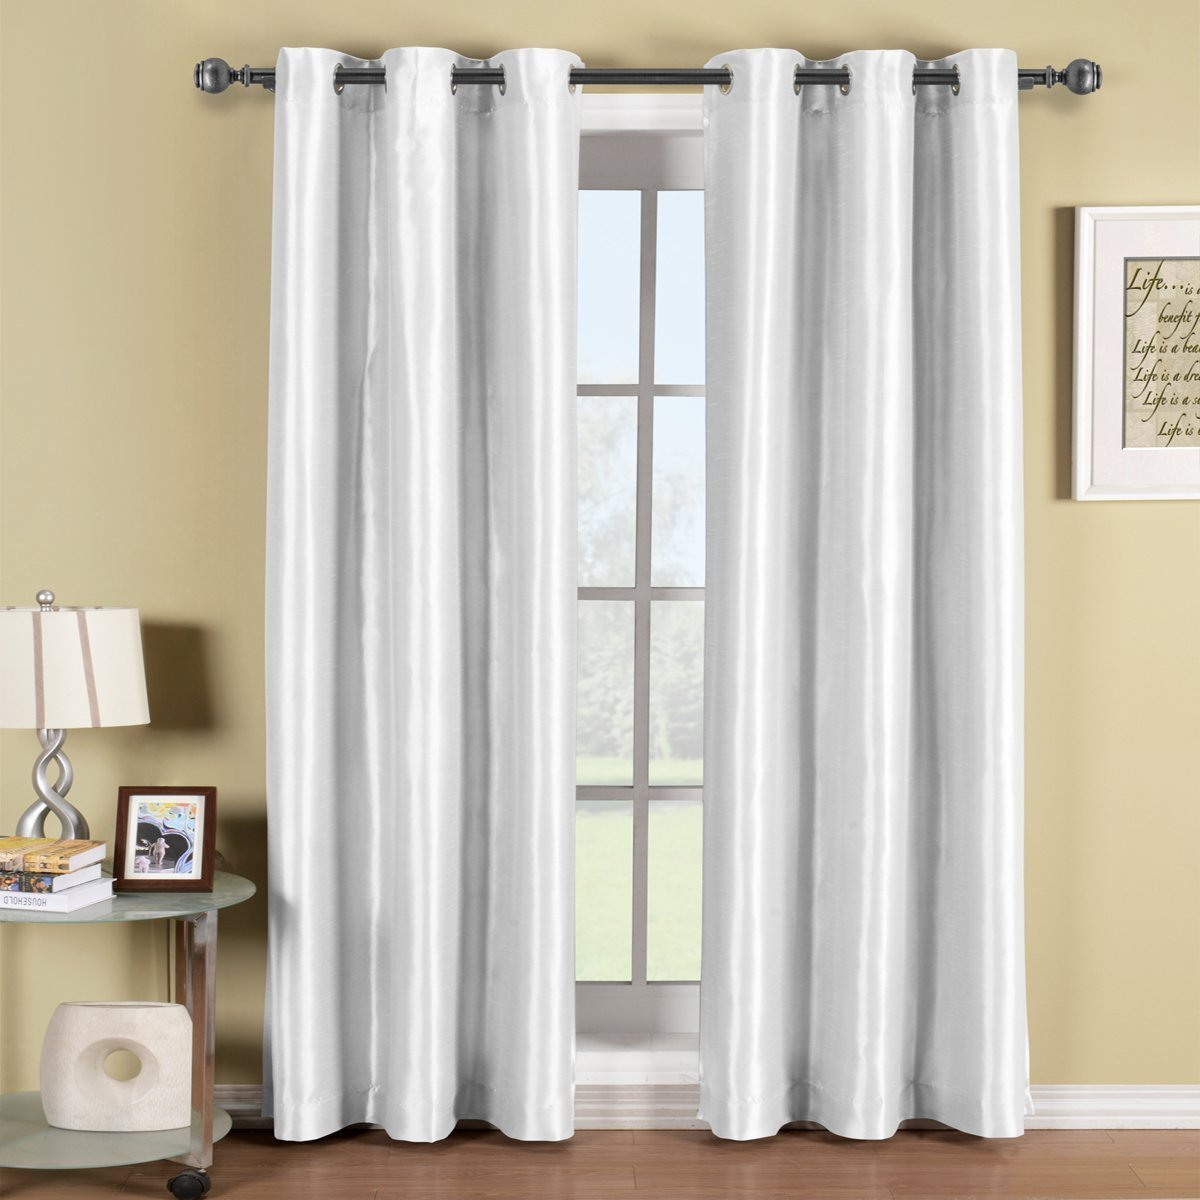 Soho White Grommet Blackout Window Curtain Panel, Solid Pattern, 42x63 inches, by Royal Hotel